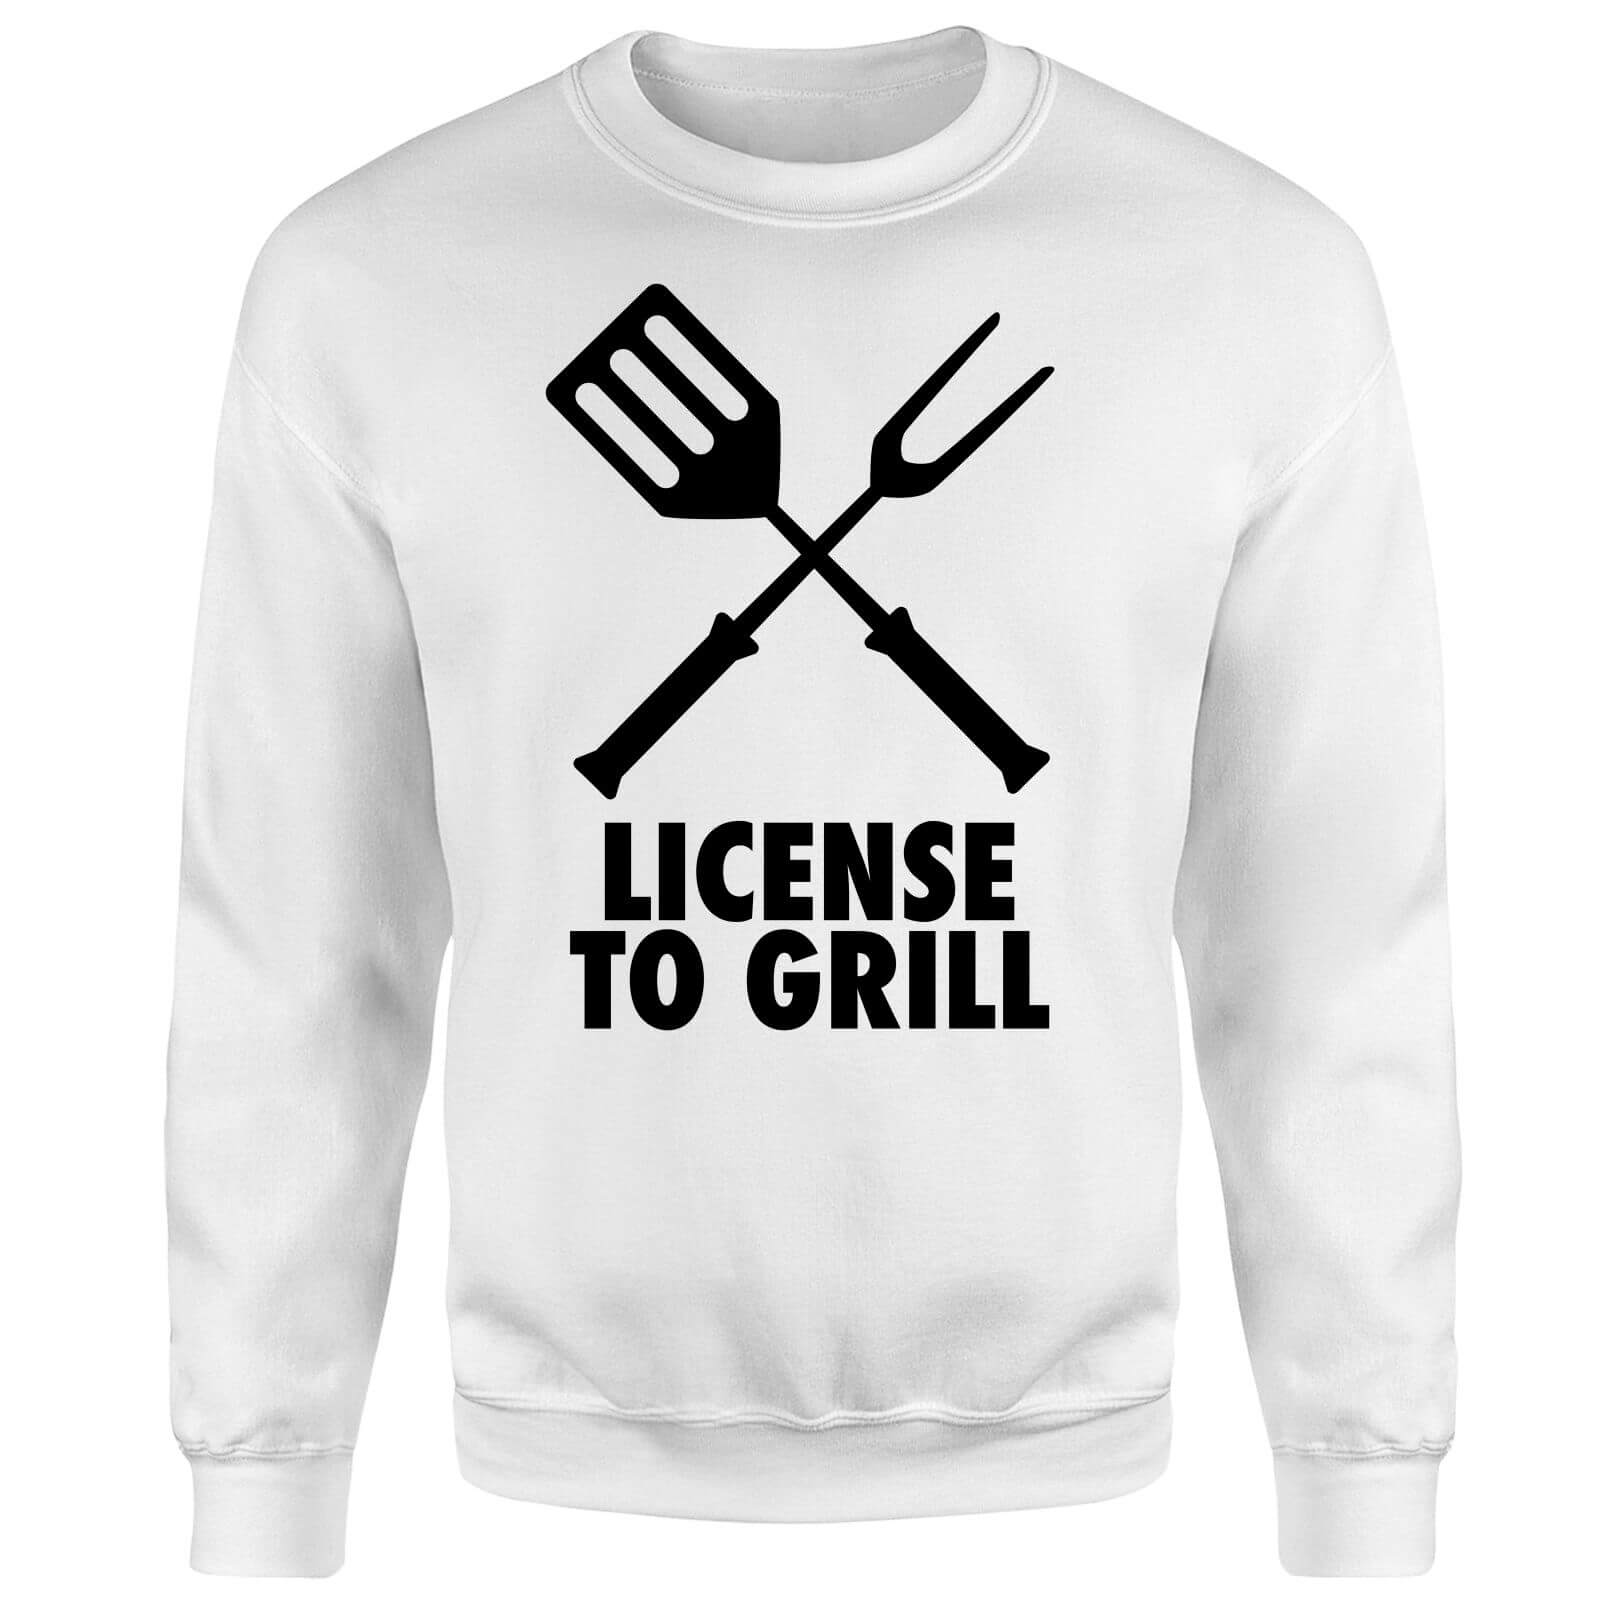 License to Grill Sweatshirt - White